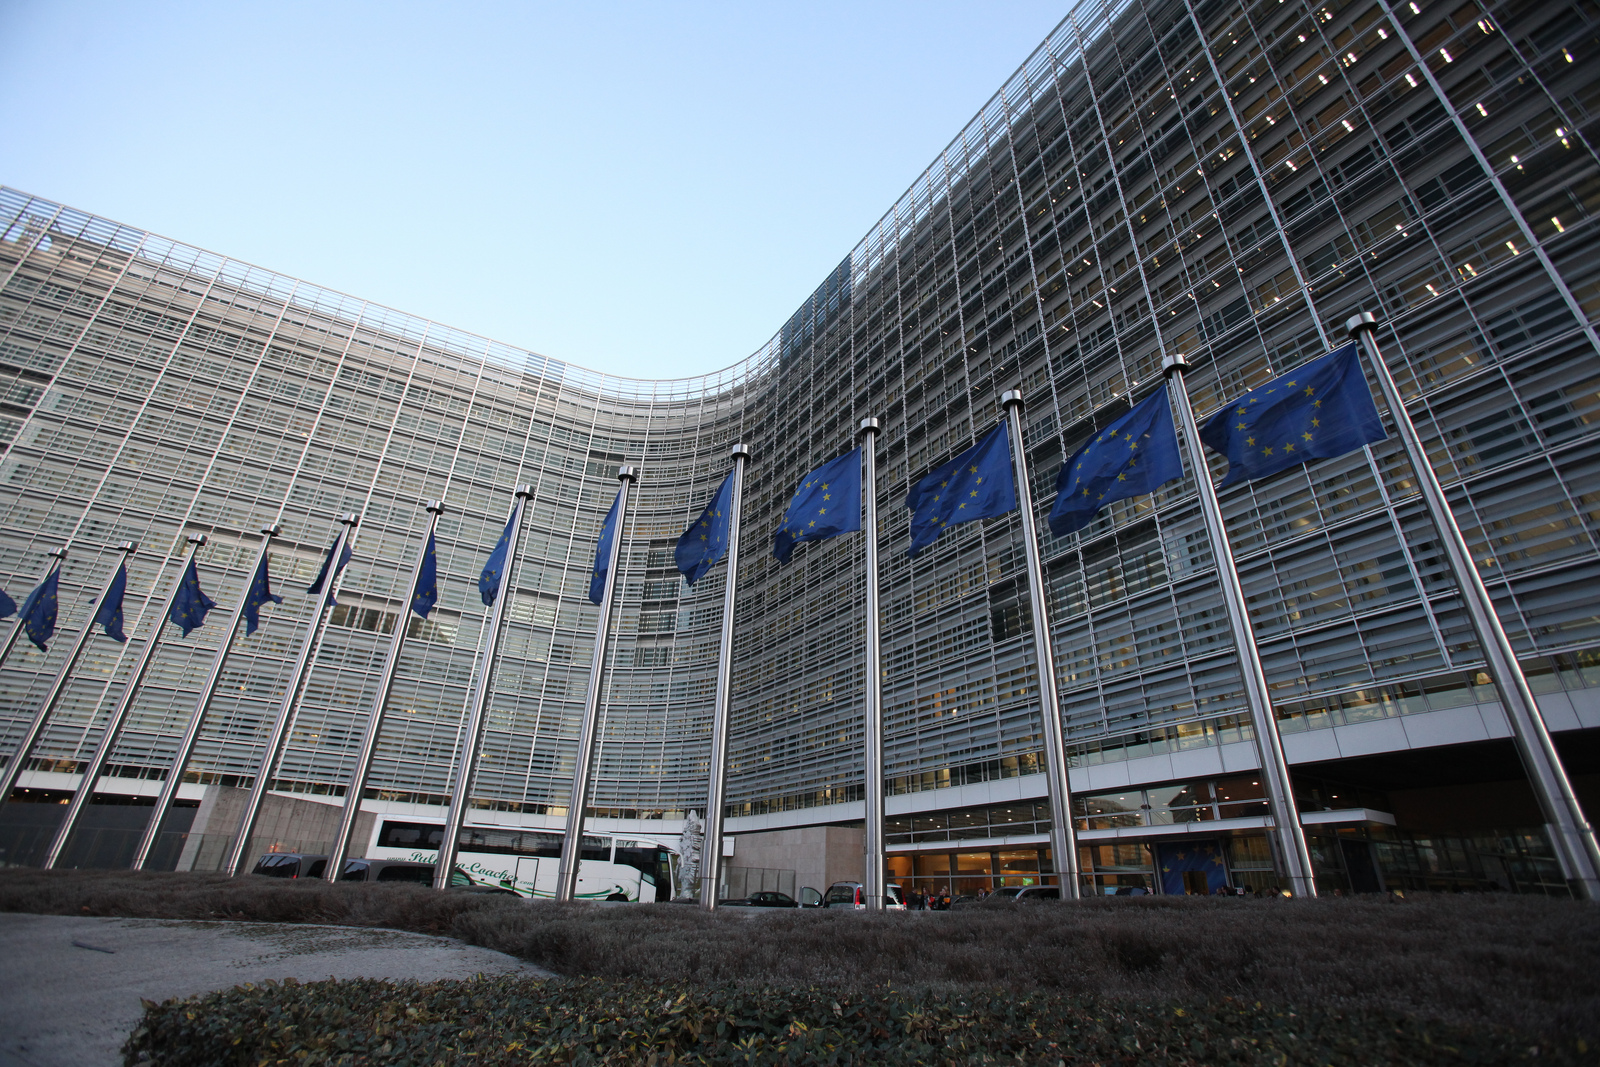 The European Commission building